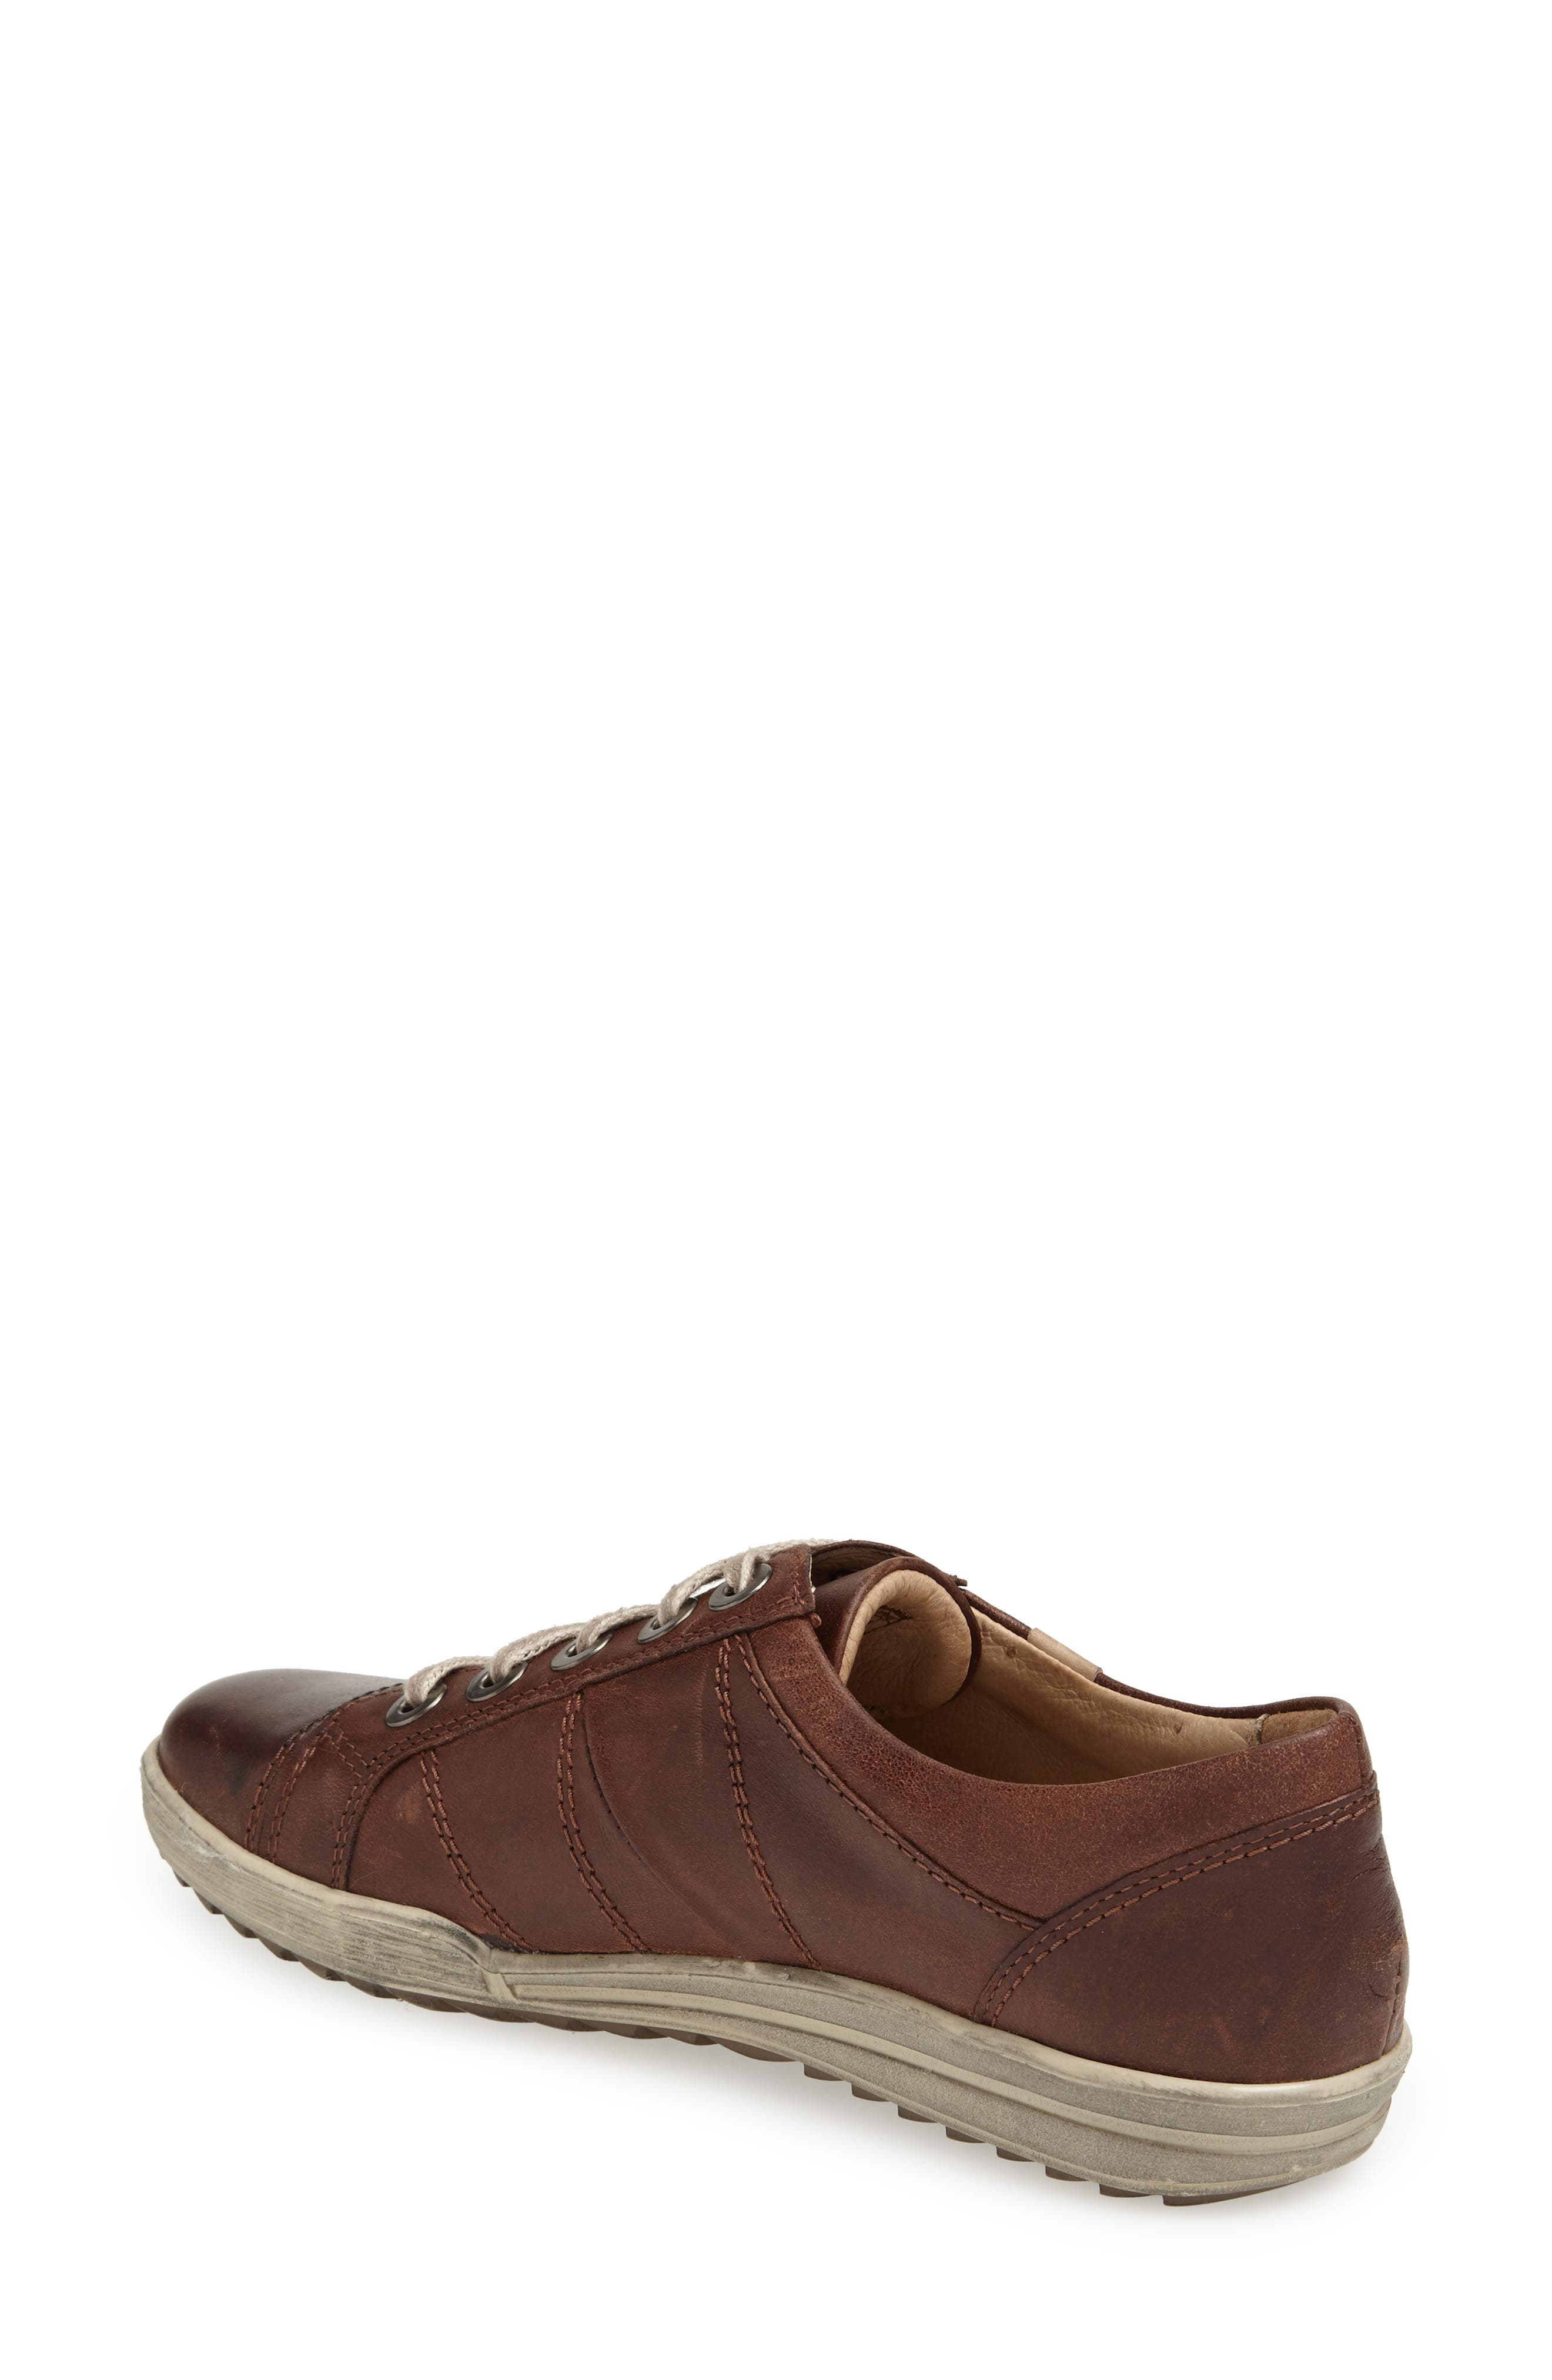 'Dany 05' Leather Sneaker,                             Alternate thumbnail 14, color,